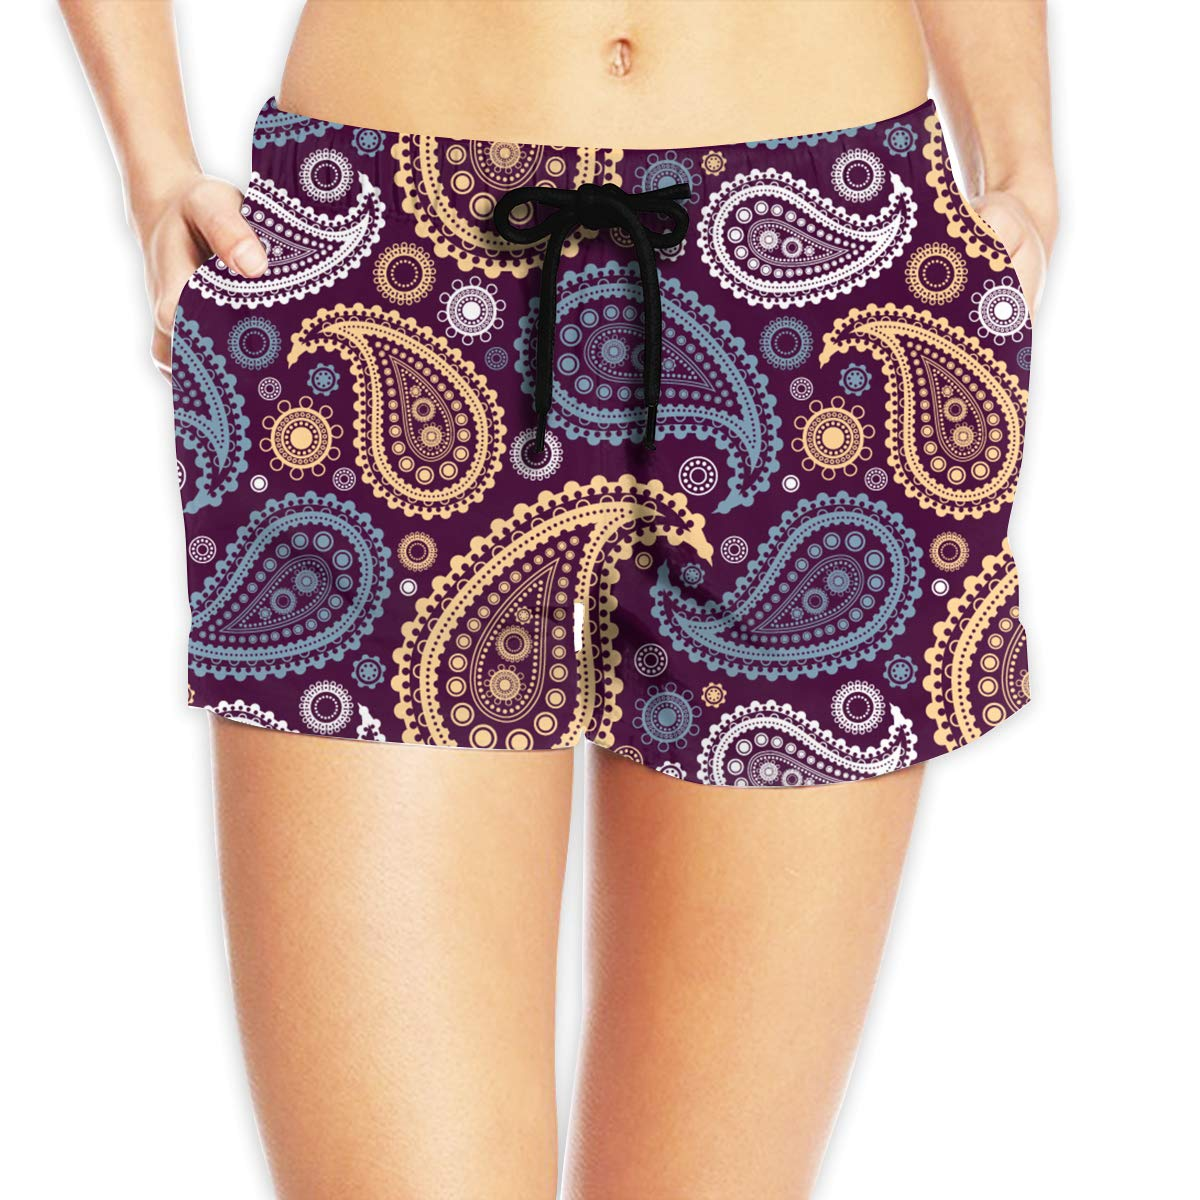 TDynasty Vintage Paisley Women Summer Elastic Beach Board Shorts Quick Dry Yoga Sports Casual Hot Pants with Side Pocket